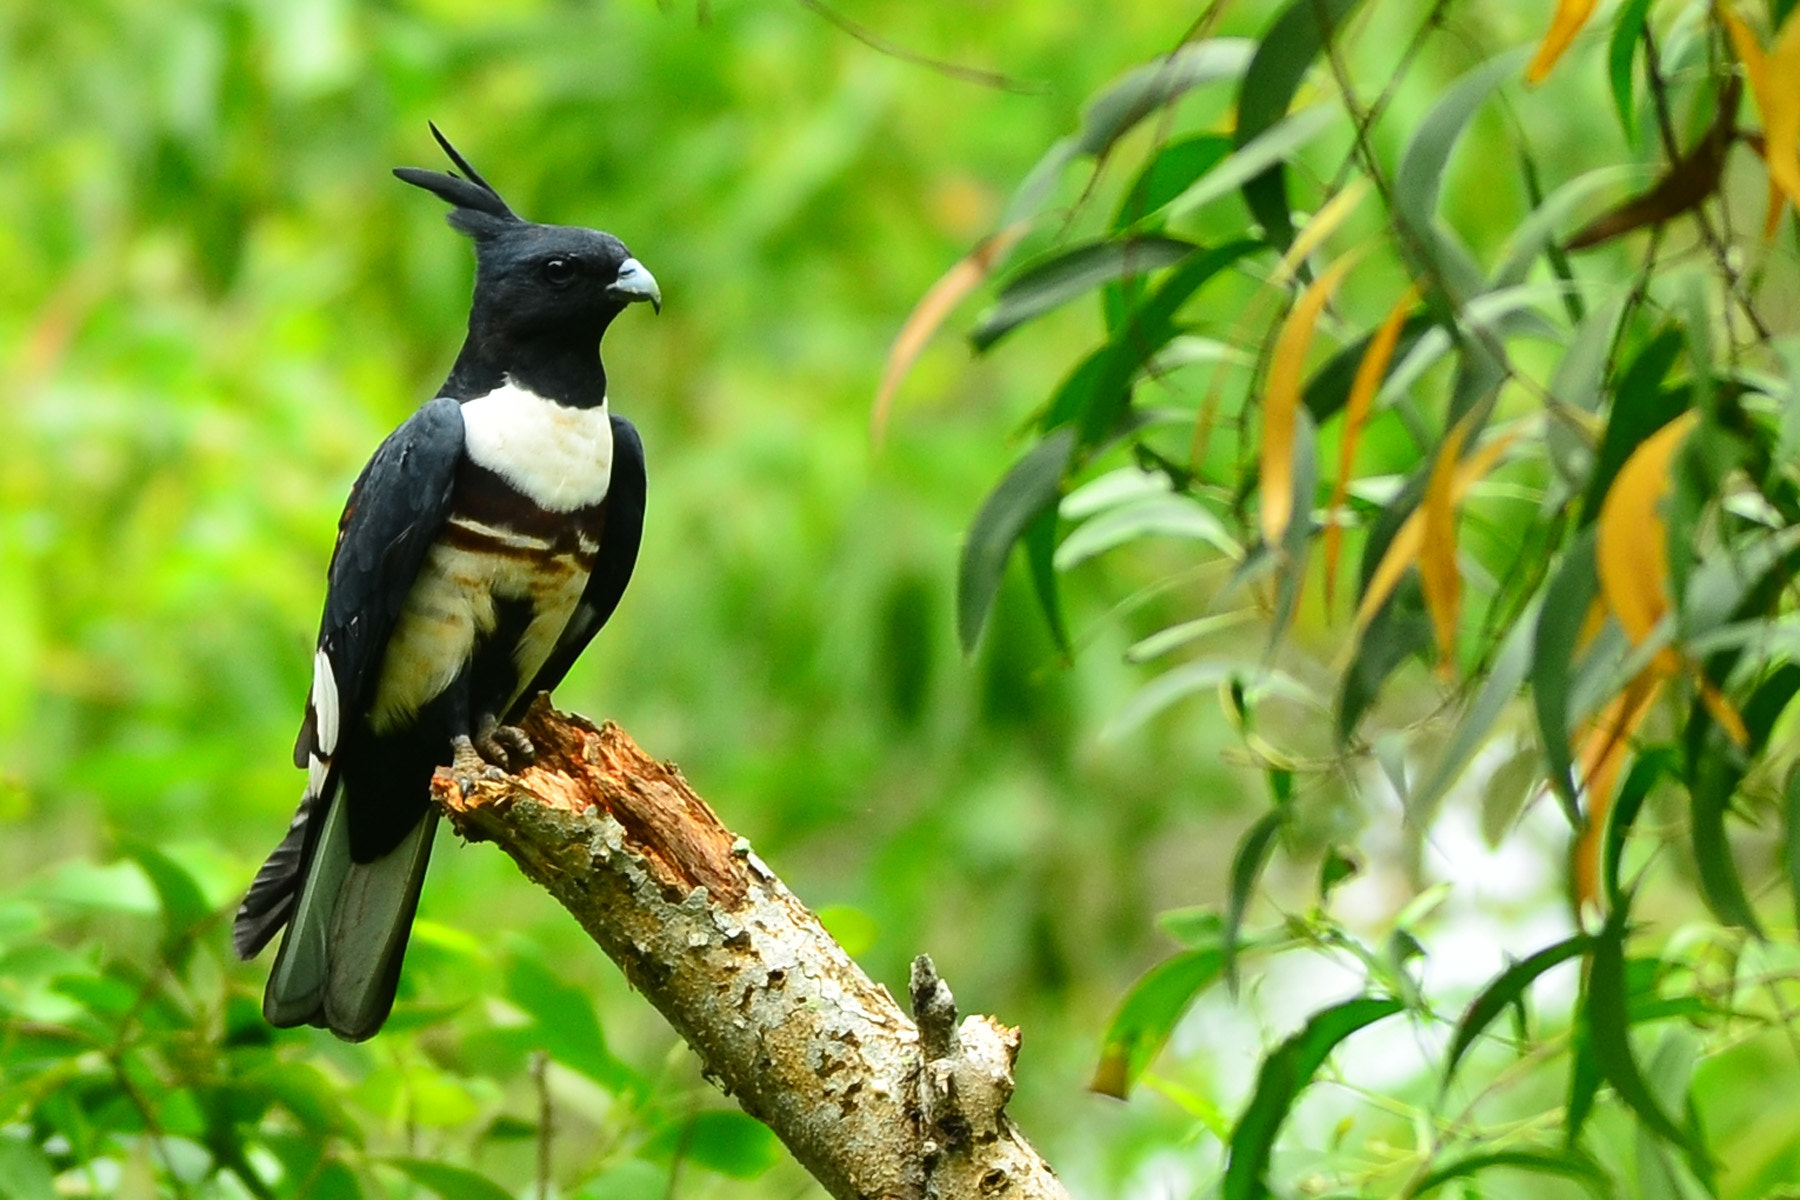 Photograph Black Baza by Gerry Geronimo on 500px